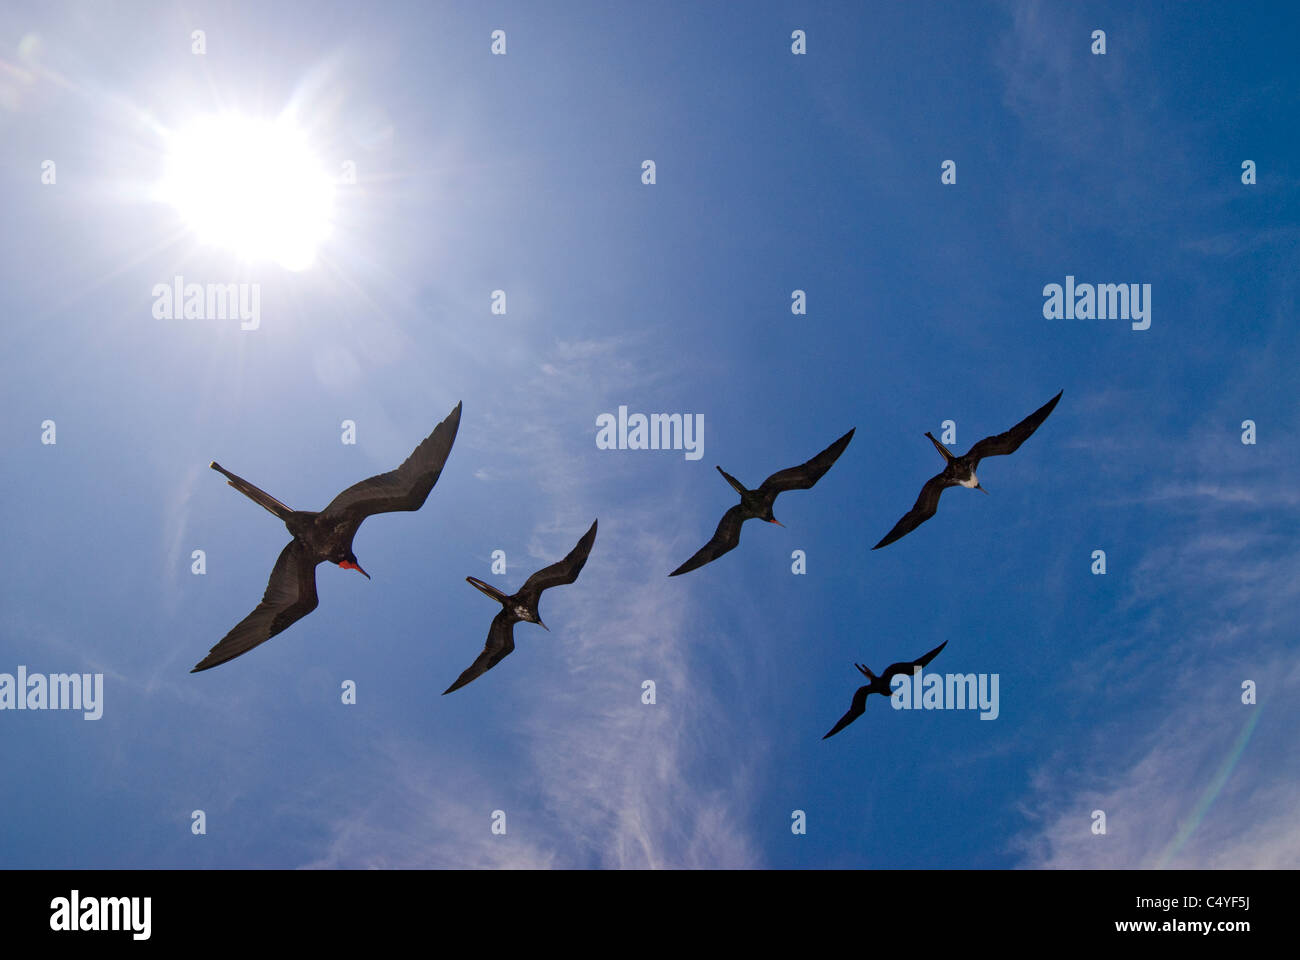 Great frigatebirds soaring over Galapagos Islands Ecuador - Stock Image